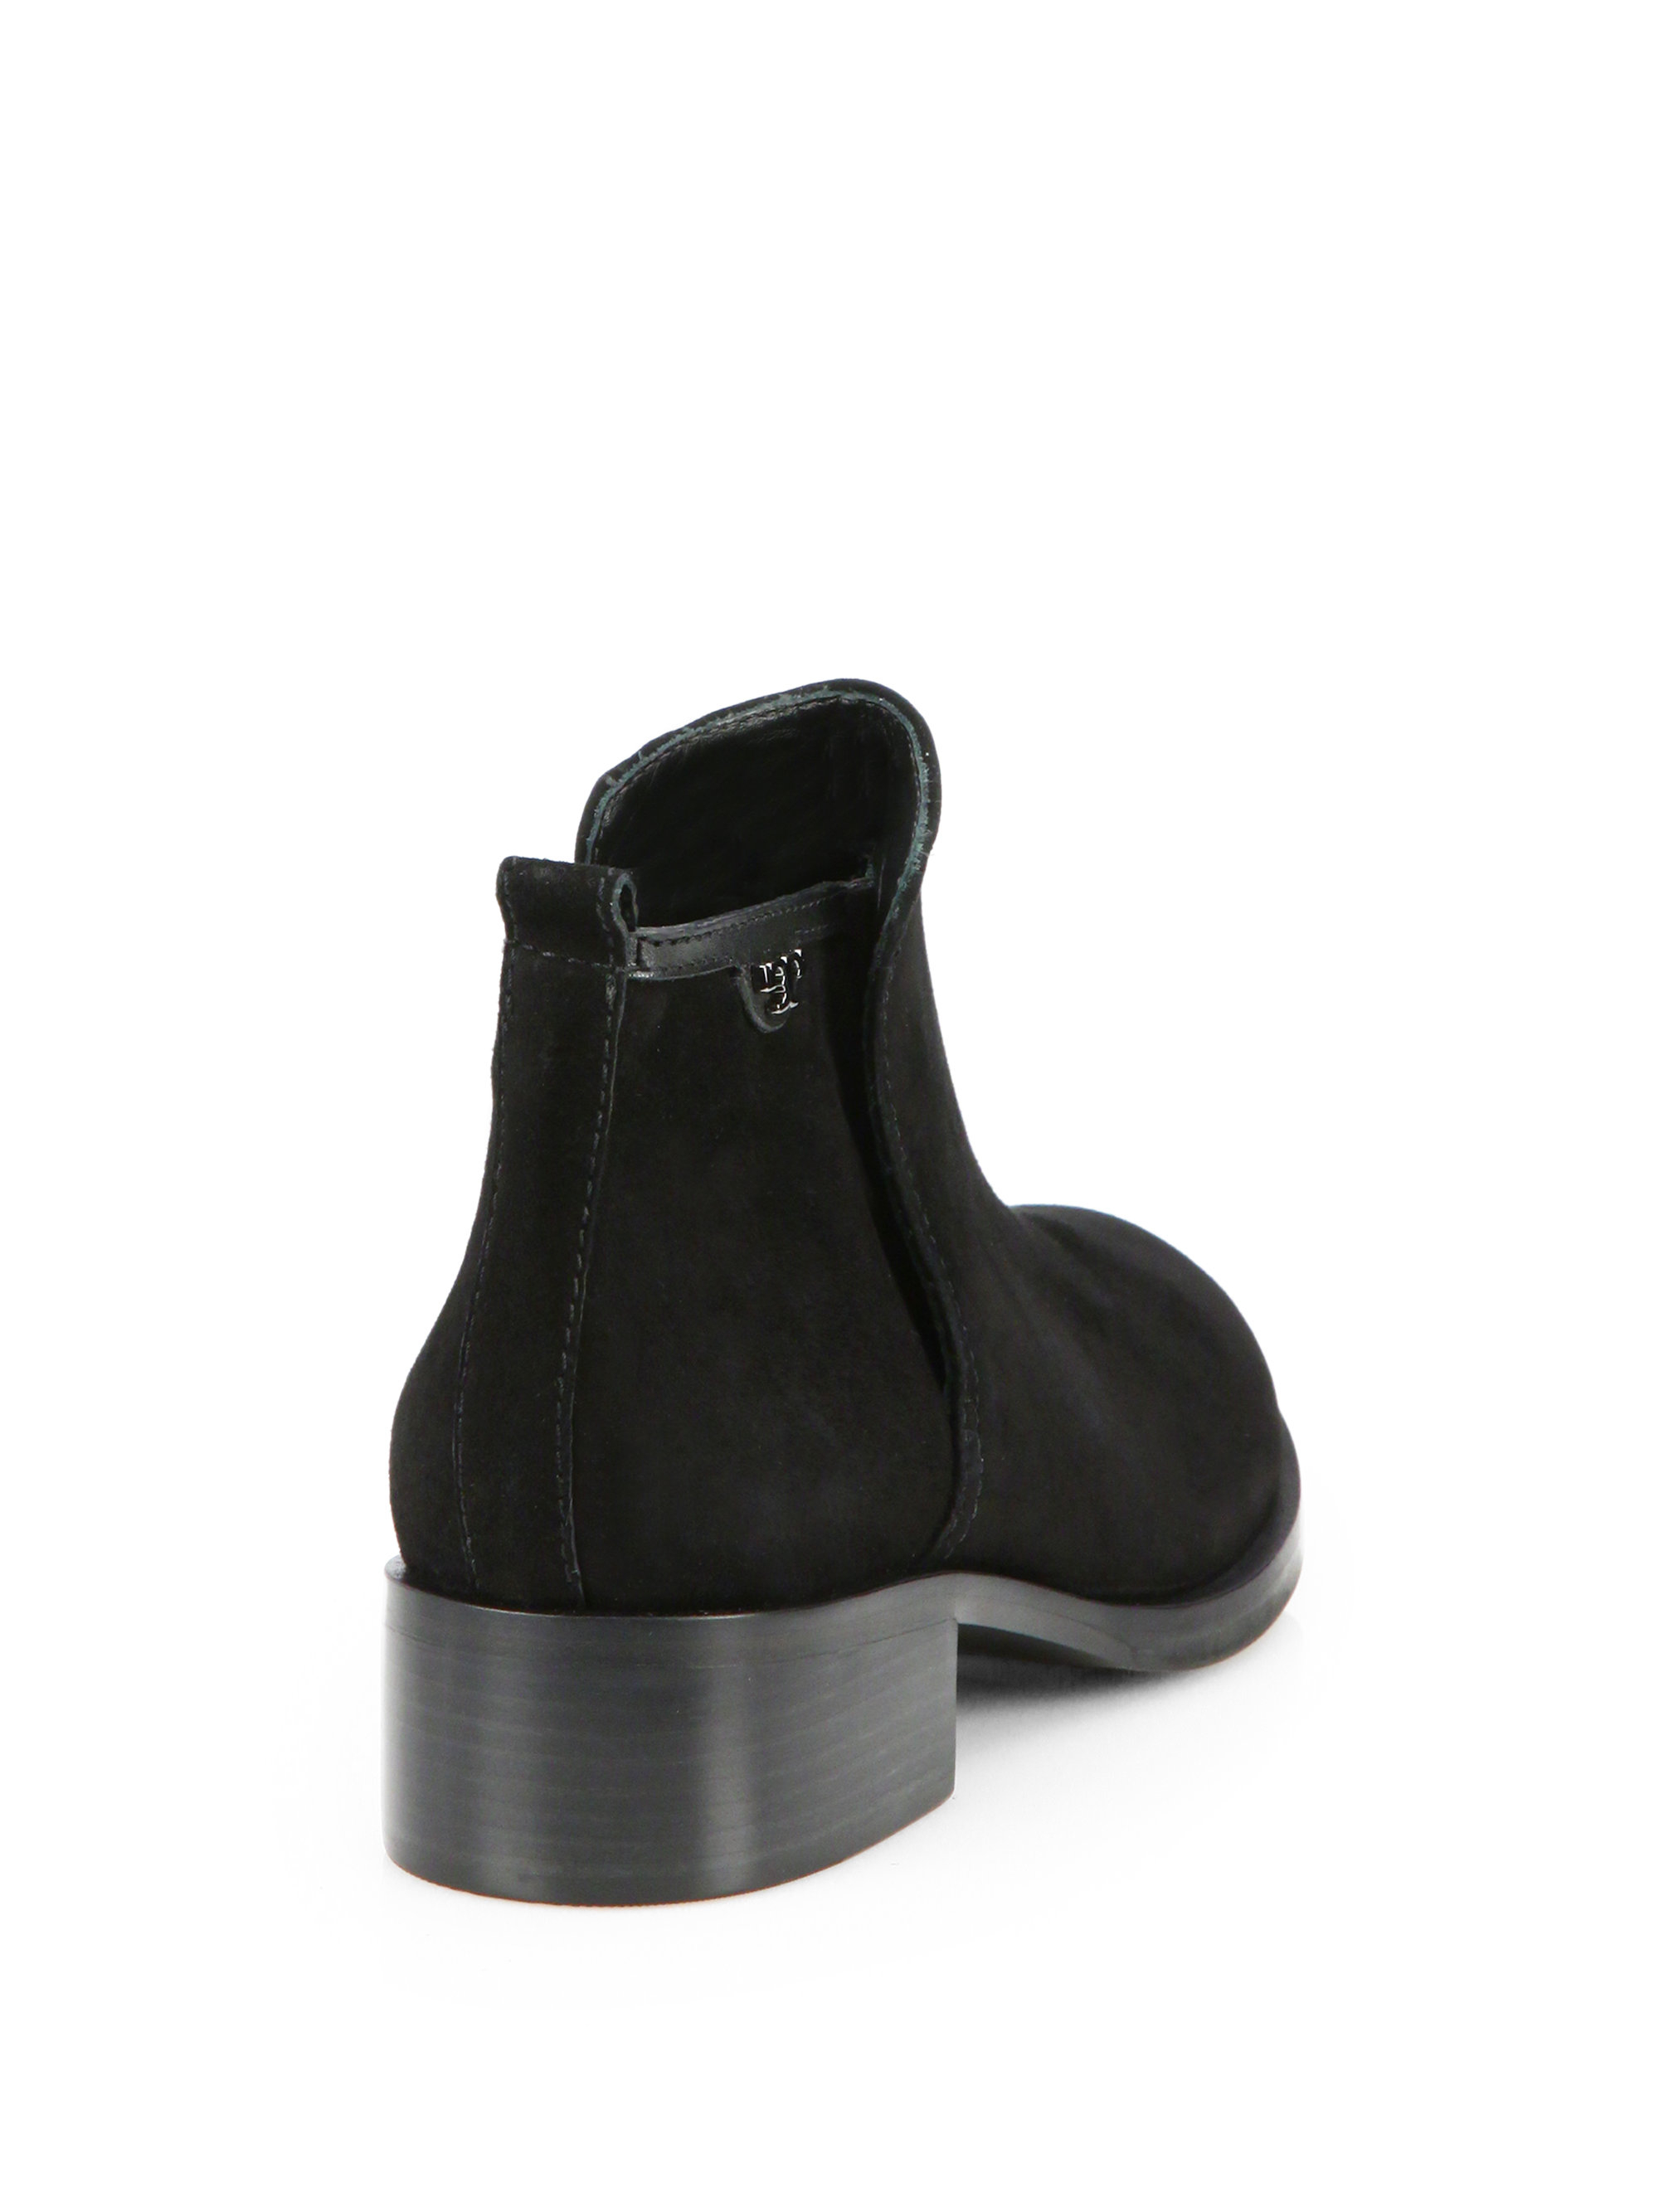 burch suede ankle boots in black lyst